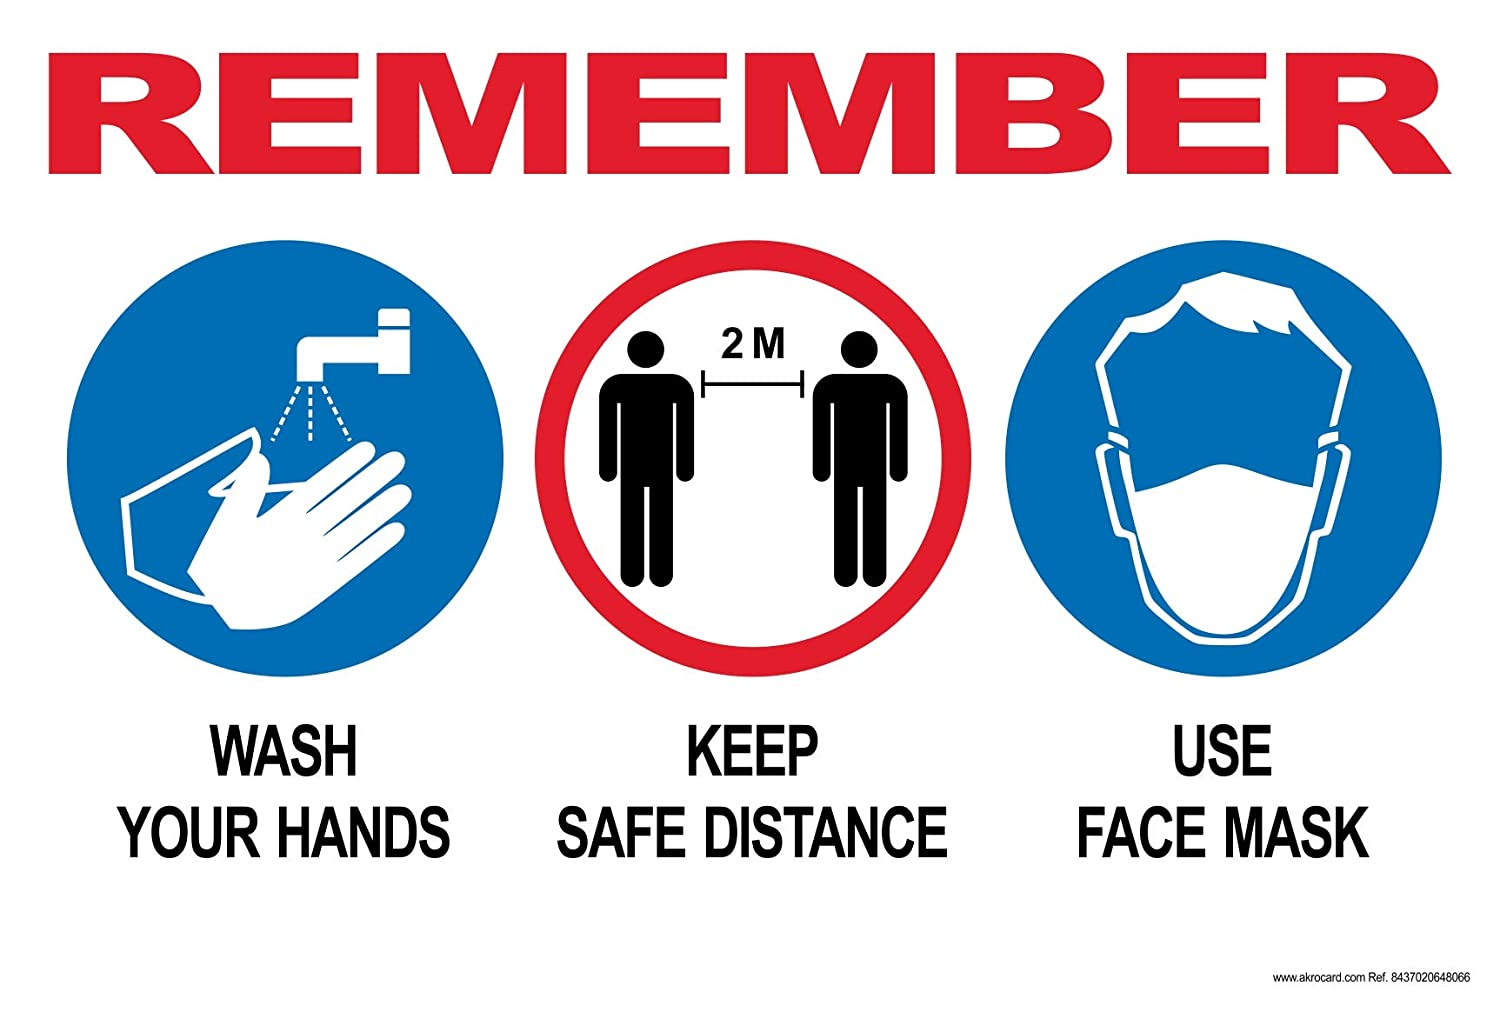 PVC SIGN- REMEMBER basic protective measures